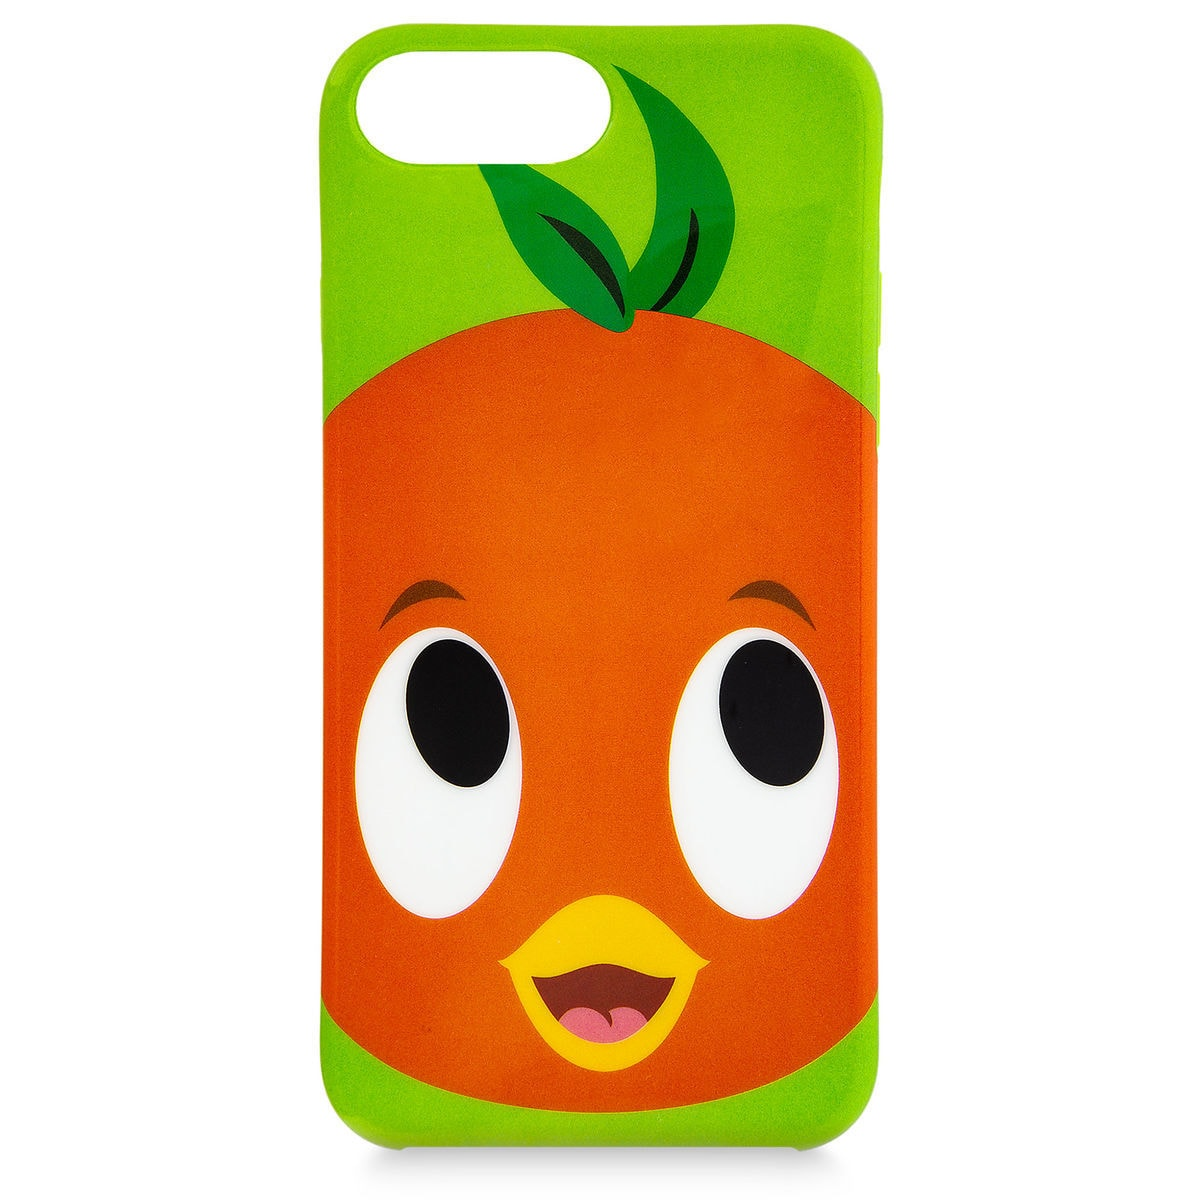 Disney iPhone 8/7/6 PLUS Case - Orange Bird